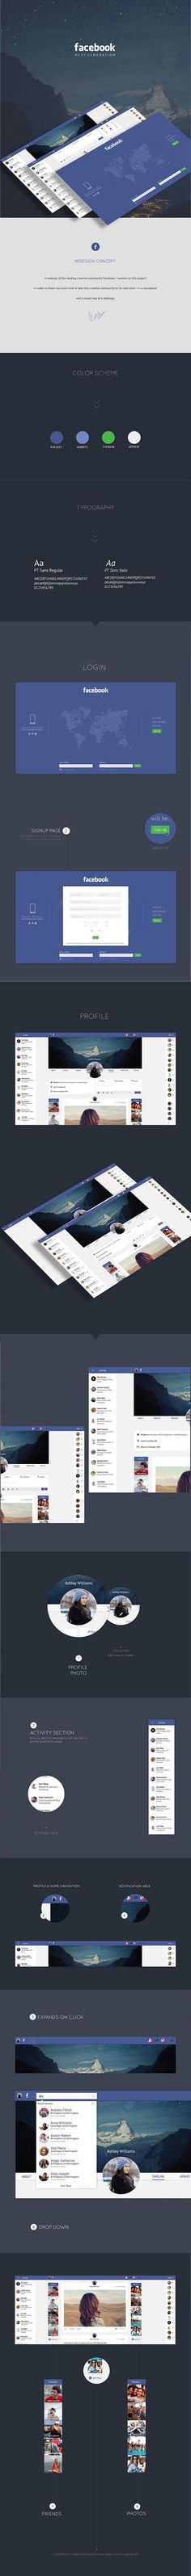 25 Interesting Redesign Concepts Of Famous Websites/Apps  Facebook Redesign. The UX Blog podcast is also available on iTunes.